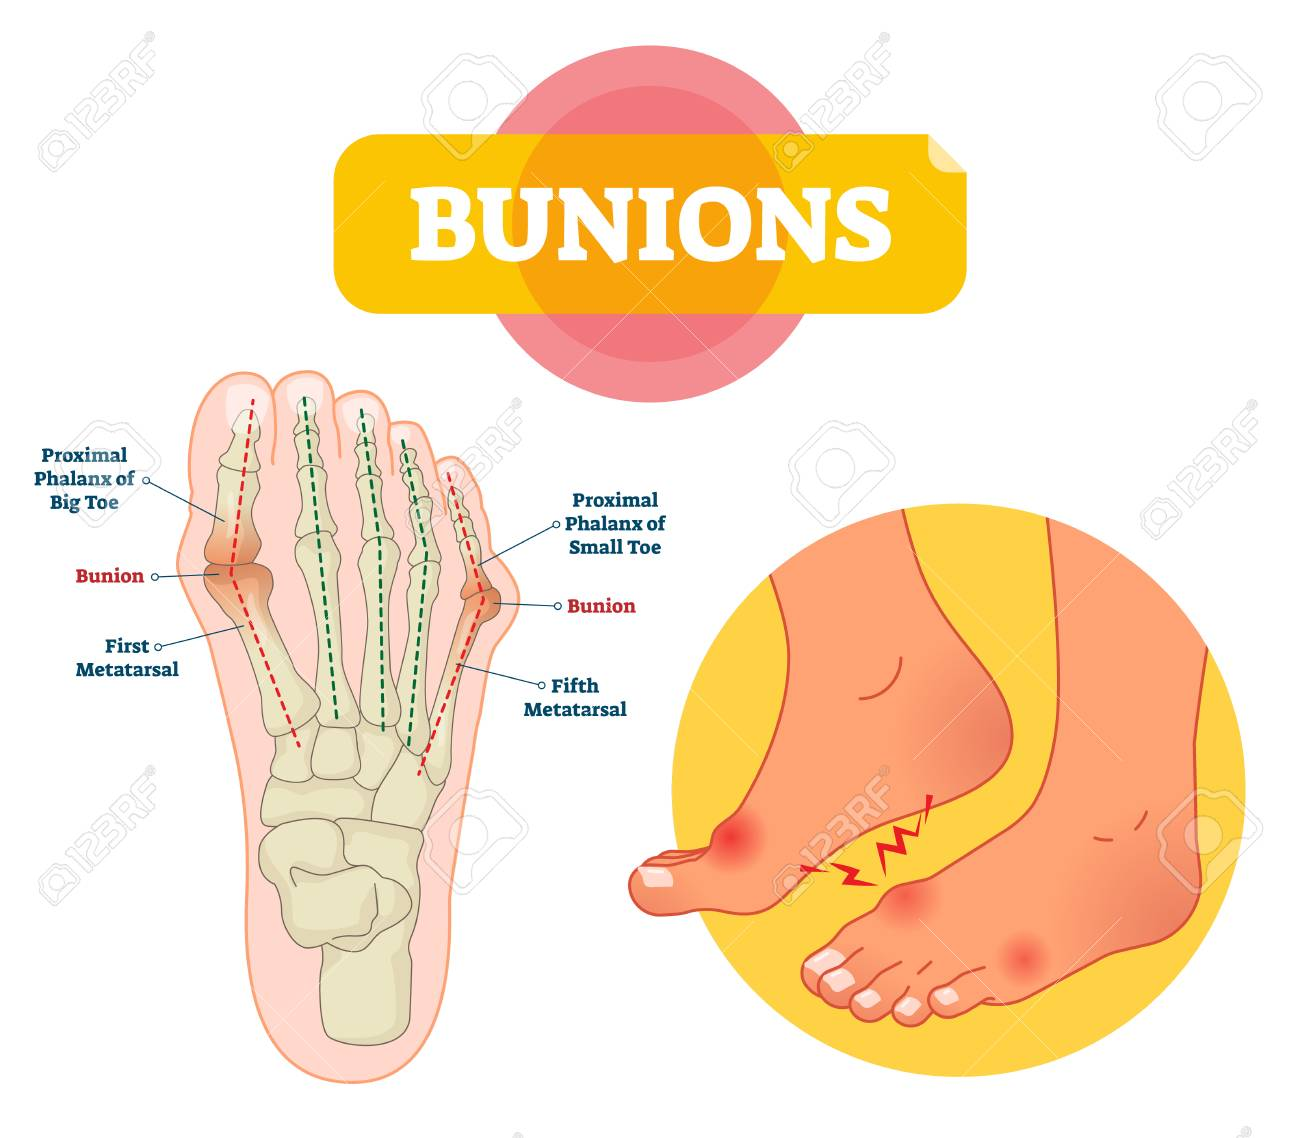 Bunions Vector Illustration Labeled Feet Bone Disorder Explanation Royalty Free Cliparts Vectors And Stock Illustration Image 123463607